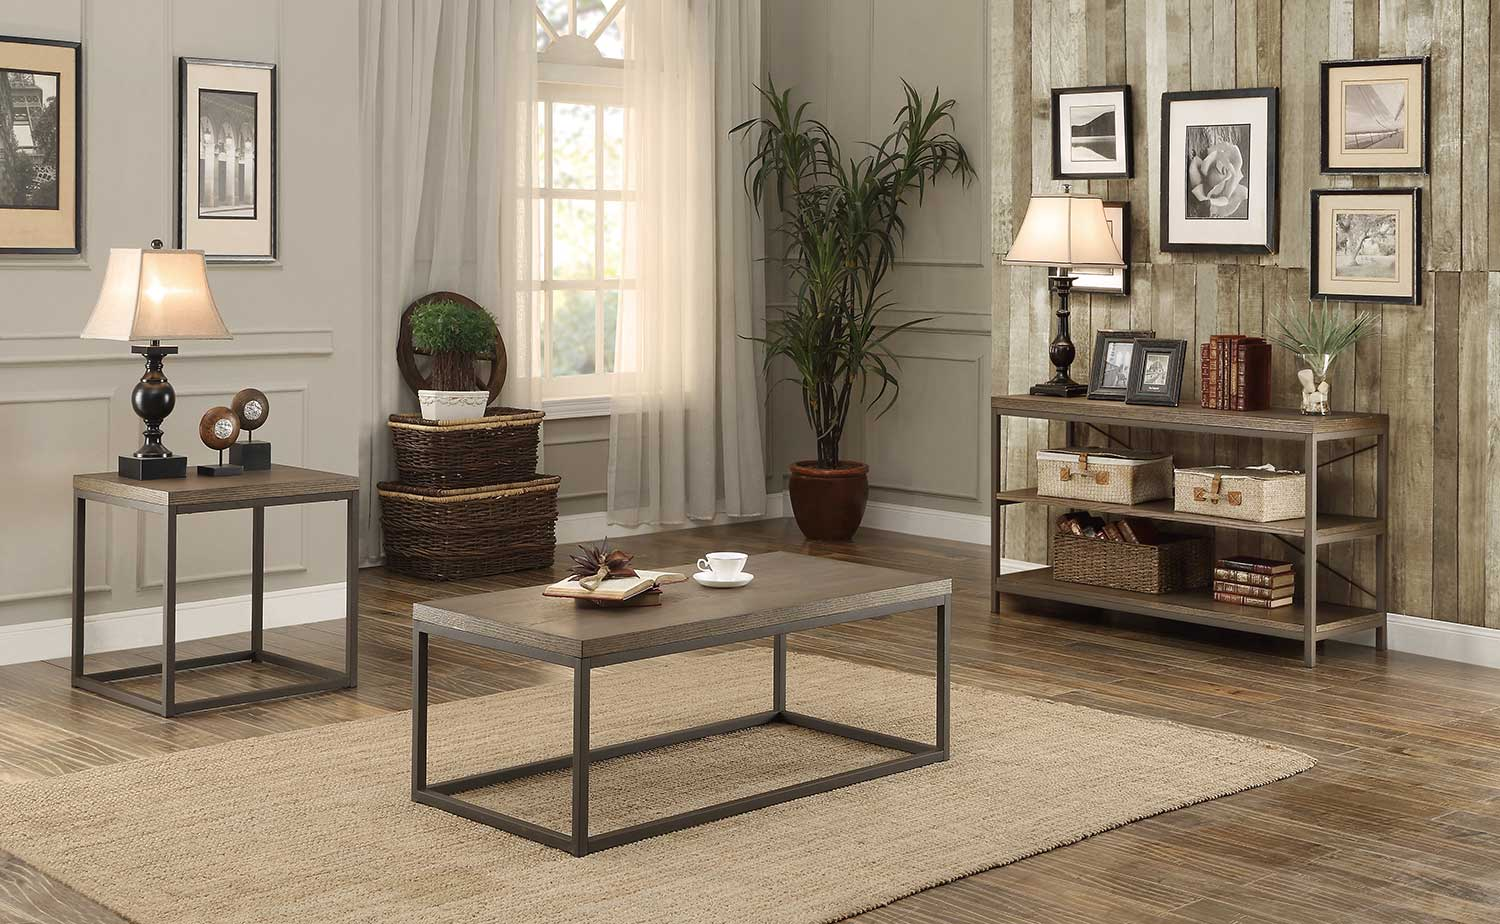 Homelegance Daria Coffee Table Set - Weathered Wood Table Top with Metal Framing